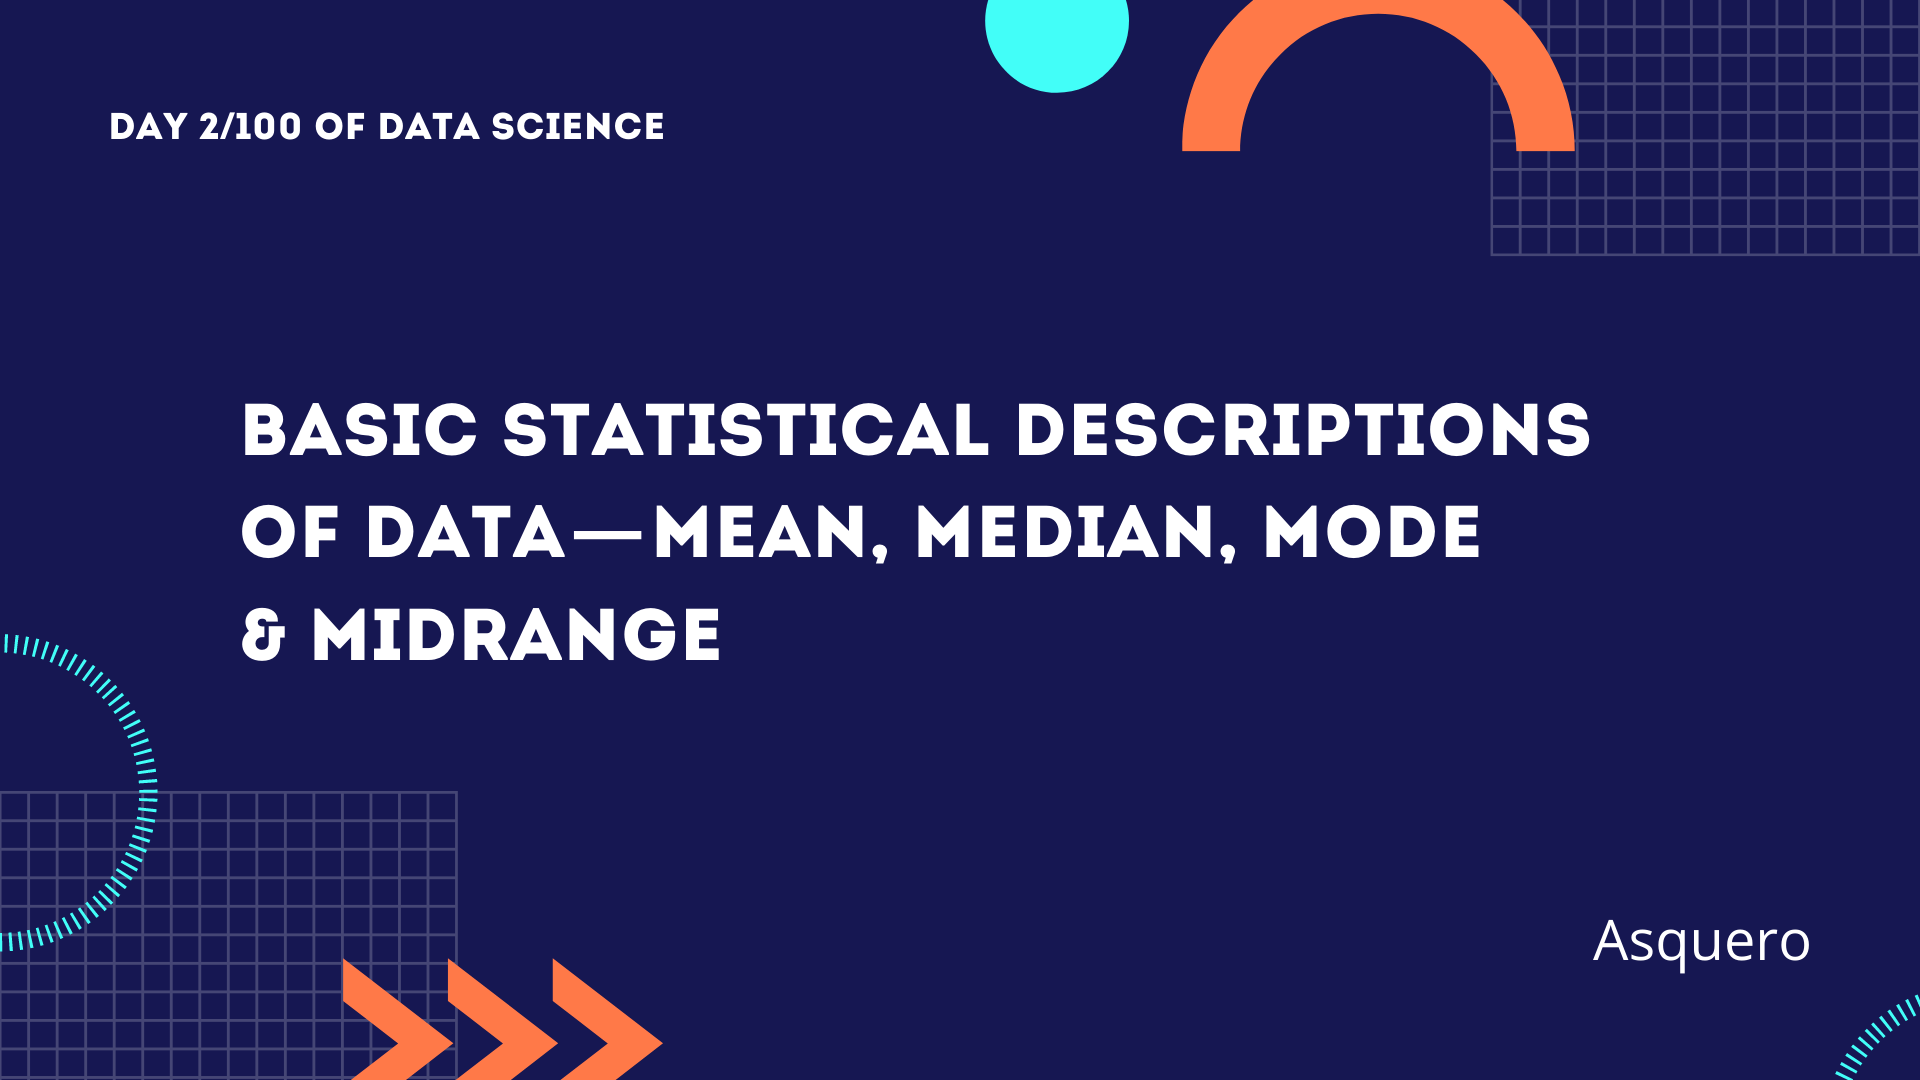 Basic Statistical Descriptions of Data - Mean, Median, Mode & Midrange